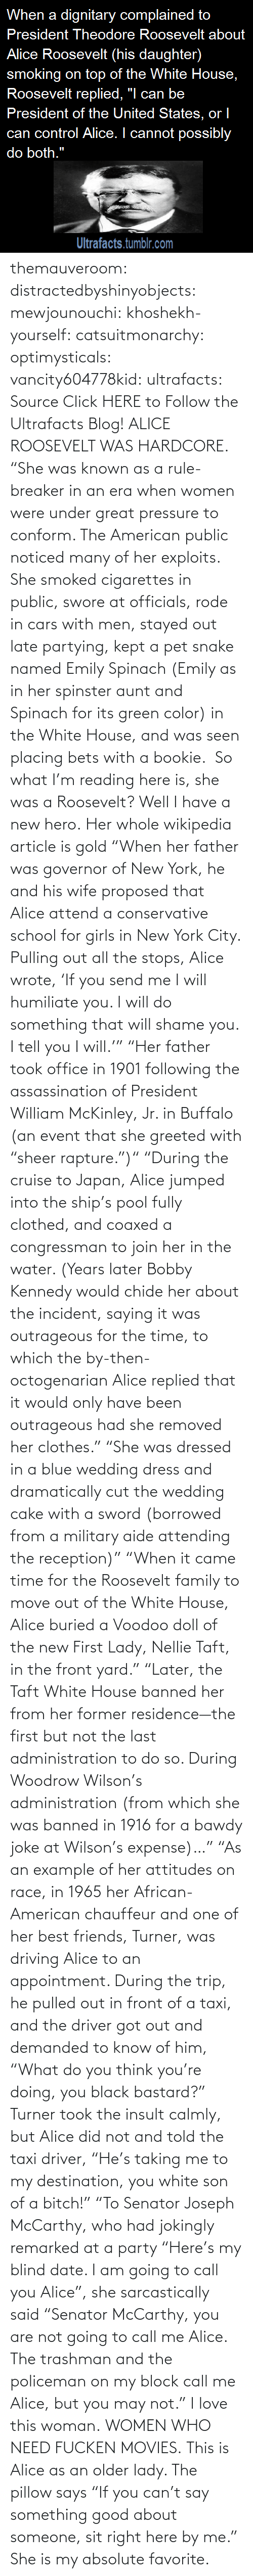 "son of a bitch: themauveroom: distractedbyshinyobjects:  mewjounouchi:  khoshekh-yourself:  catsuitmonarchy:  optimysticals:  vancity604778kid:  ultrafacts:     Source Click HERE to Follow the Ultrafacts Blog!     ALICE ROOSEVELT WAS HARDCORE. ""She was known as a rule-breaker in an era when women were under great pressure to conform. The American public noticed many of her exploits. She smoked cigarettes in public, swore at officials, rode in cars with men, stayed out late partying, kept a pet snake named Emily Spinach (Emily as in her spinster aunt and Spinach for its green color) in the White House, and was seen placing bets with a bookie.    So what I'm reading here is, she was a Roosevelt?  Well I have a new hero.  Her whole wikipedia article is gold ""When her father was governor of New York, he and his wife proposed that Alice attend a conservative school for girls in New York City. Pulling out all the stops, Alice wrote, 'If you send me I will humiliate you. I will do something that will shame you. I tell you I will.'"" ""Her father took office in 1901 following the assassination of President William McKinley, Jr. in Buffalo (an event that she greeted with ""sheer rapture."")"" ""During the cruise to Japan, Alice jumped into the ship's pool fully clothed, and coaxed a congressman to join her in the water. (Years later Bobby Kennedy would chide her about the incident, saying it was outrageous for the time, to which the by-then-octogenarian Alice replied that it would only have been outrageous had she removed her clothes."" ""She was dressed in a blue wedding dress and dramatically cut the wedding cake with a sword (borrowed from a military aide attending the reception)"" ""When it came time for the Roosevelt family to move out of the White House, Alice buried a Voodoo doll of the new First Lady, Nellie Taft, in the front yard."" ""Later, the Taft White House banned her from her former residence—the first but not the last administration to do so. During Woodrow Wilson's administration (from which she was banned in 1916 for a bawdy joke at Wilson's expense)…"" ""As an example of her attitudes on race, in 1965 her African-American chauffeur and one of her best friends, Turner, was driving Alice to an appointment. During the trip, he pulled out in front of a taxi, and the driver got out and demanded to know of him, ""What do you think you're doing, you black bastard?"" Turner took the insult calmly, but Alice did not and told the taxi driver, ""He's taking me to my destination, you white son of a bitch!"" ""To Senator Joseph McCarthy, who had jokingly remarked at a party ""Here's my blind date. I am going to call you Alice"", she sarcastically said ""Senator McCarthy, you are not going to call me Alice. The trashman and the policeman on my block call me Alice, but you may not.""  I love this woman.  WOMEN WHO NEED FUCKEN MOVIES.   This is Alice as an older lady. The pillow says ""If you can't say something good about someone, sit right here by me.""  She is my absolute favorite."